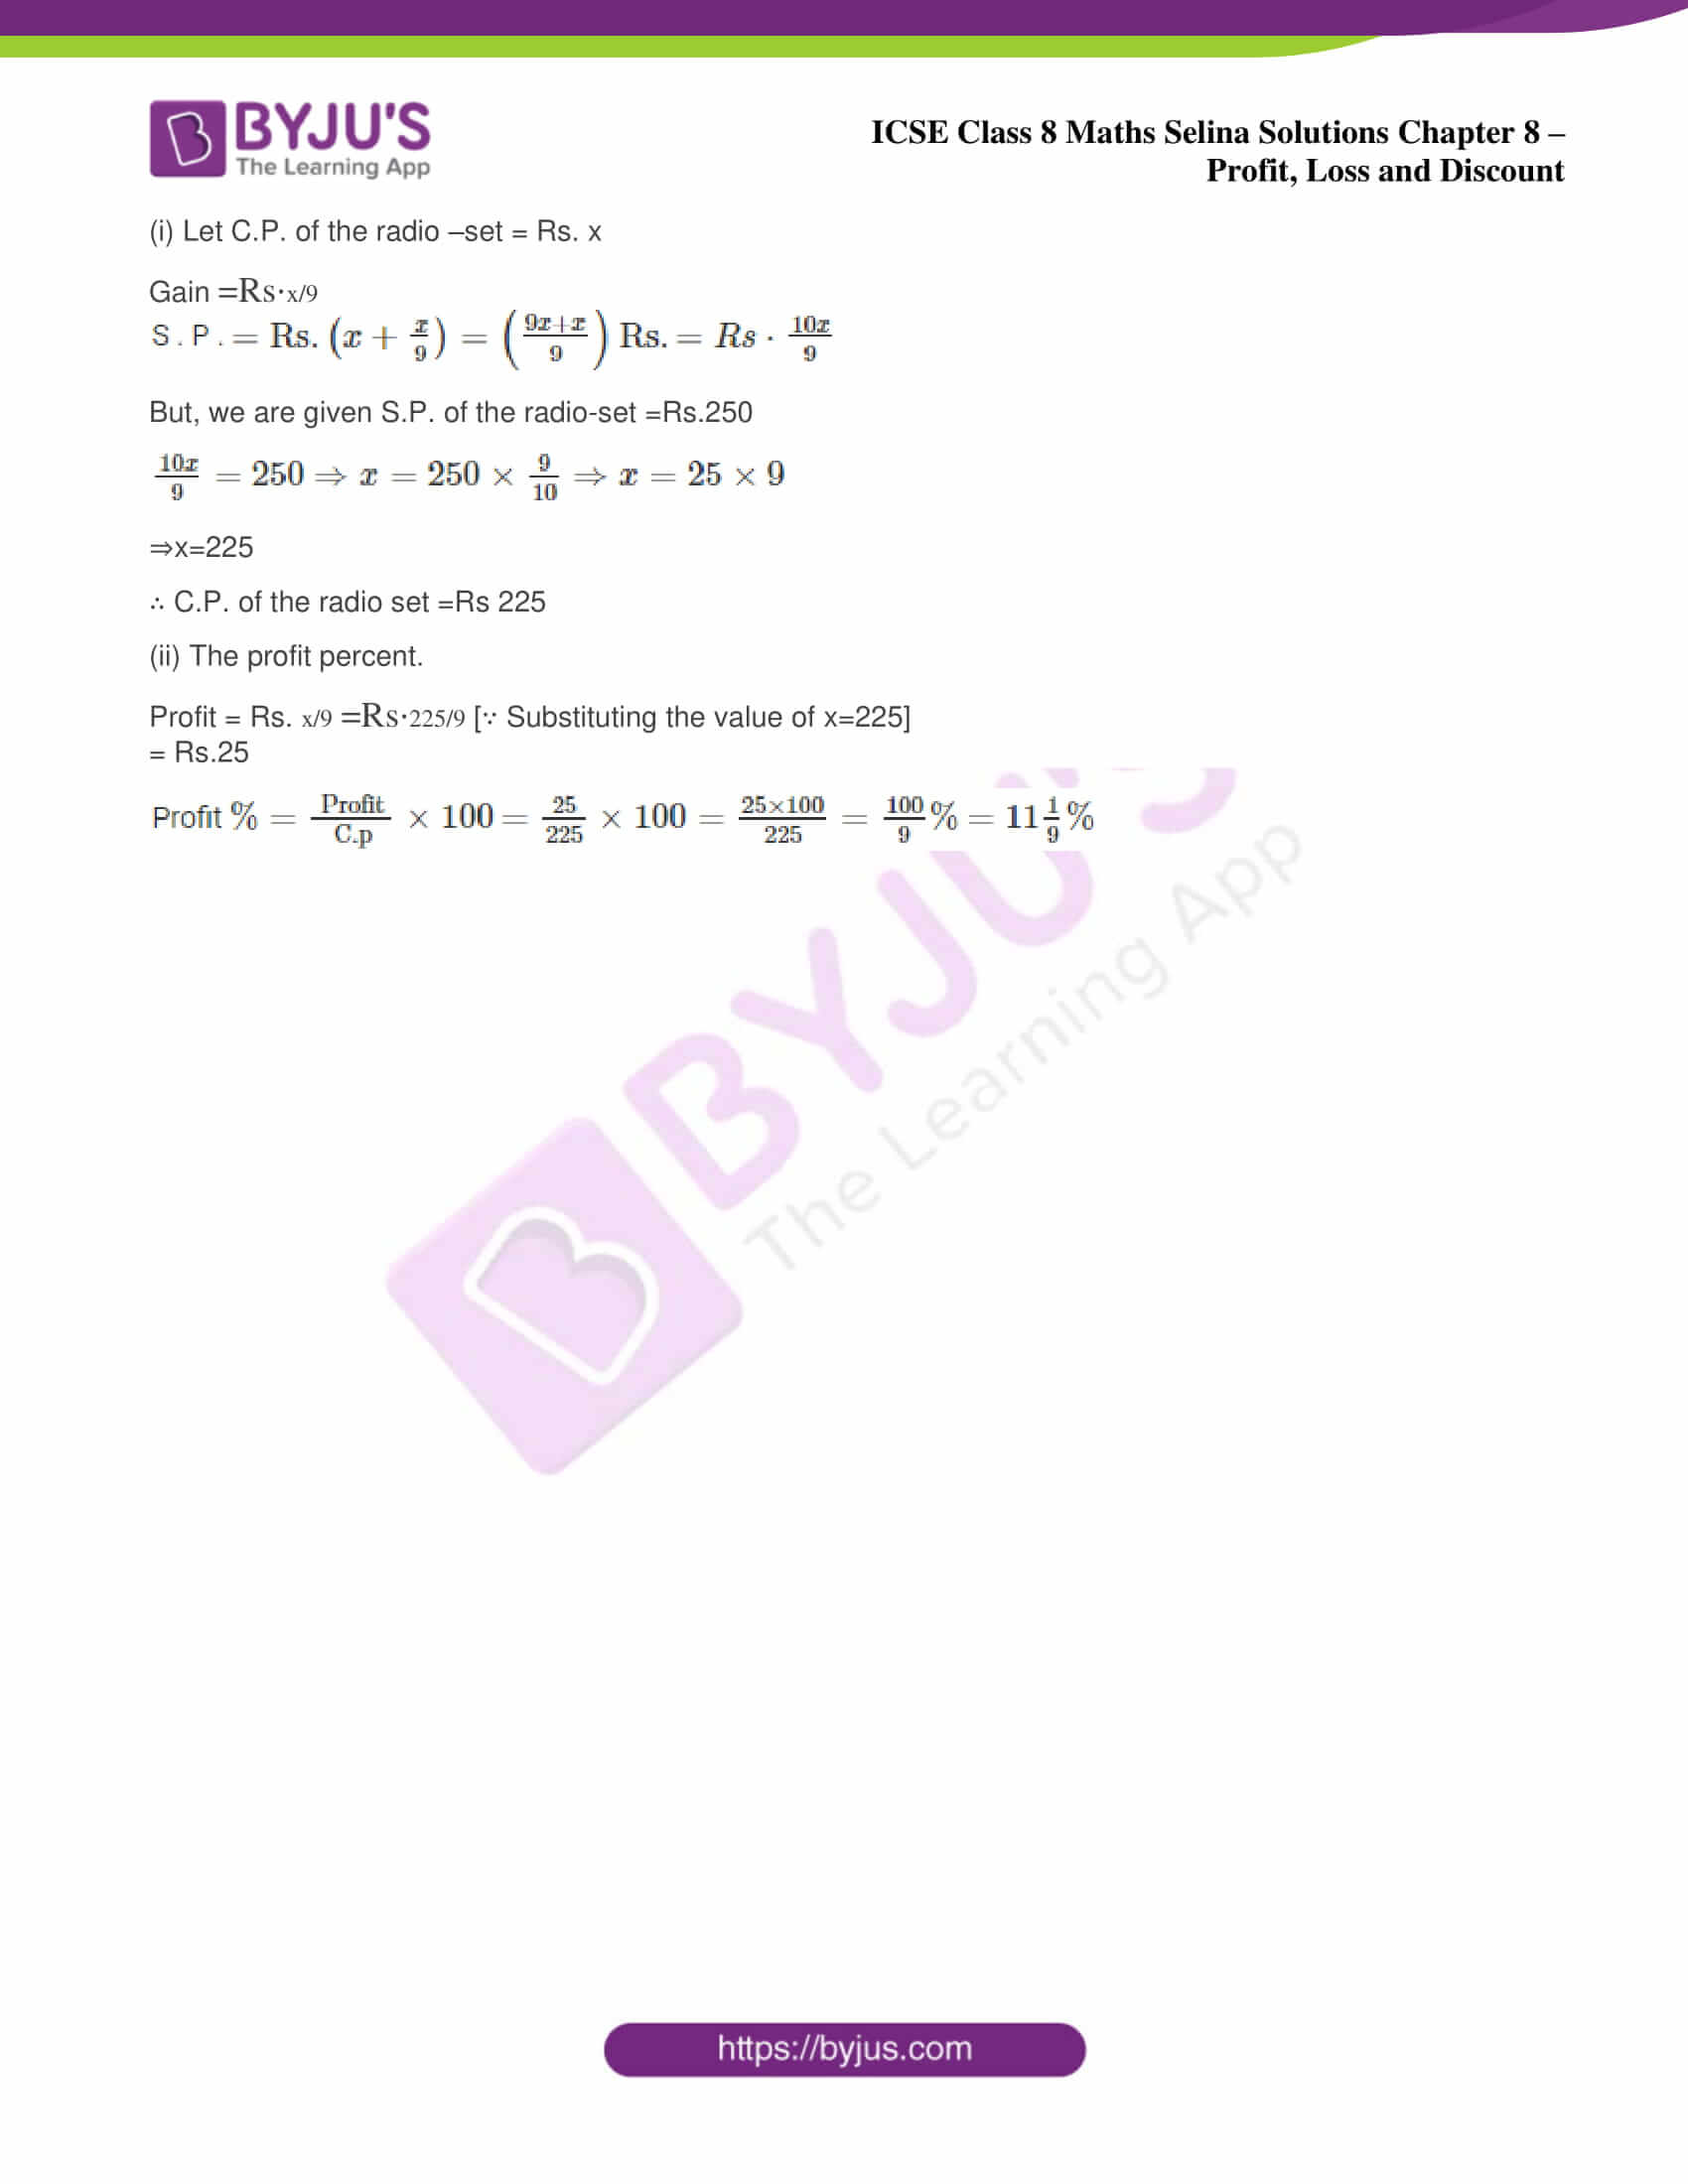 icse april7 class 8 maths selina solutions chapter 8 profit loss and discount 6